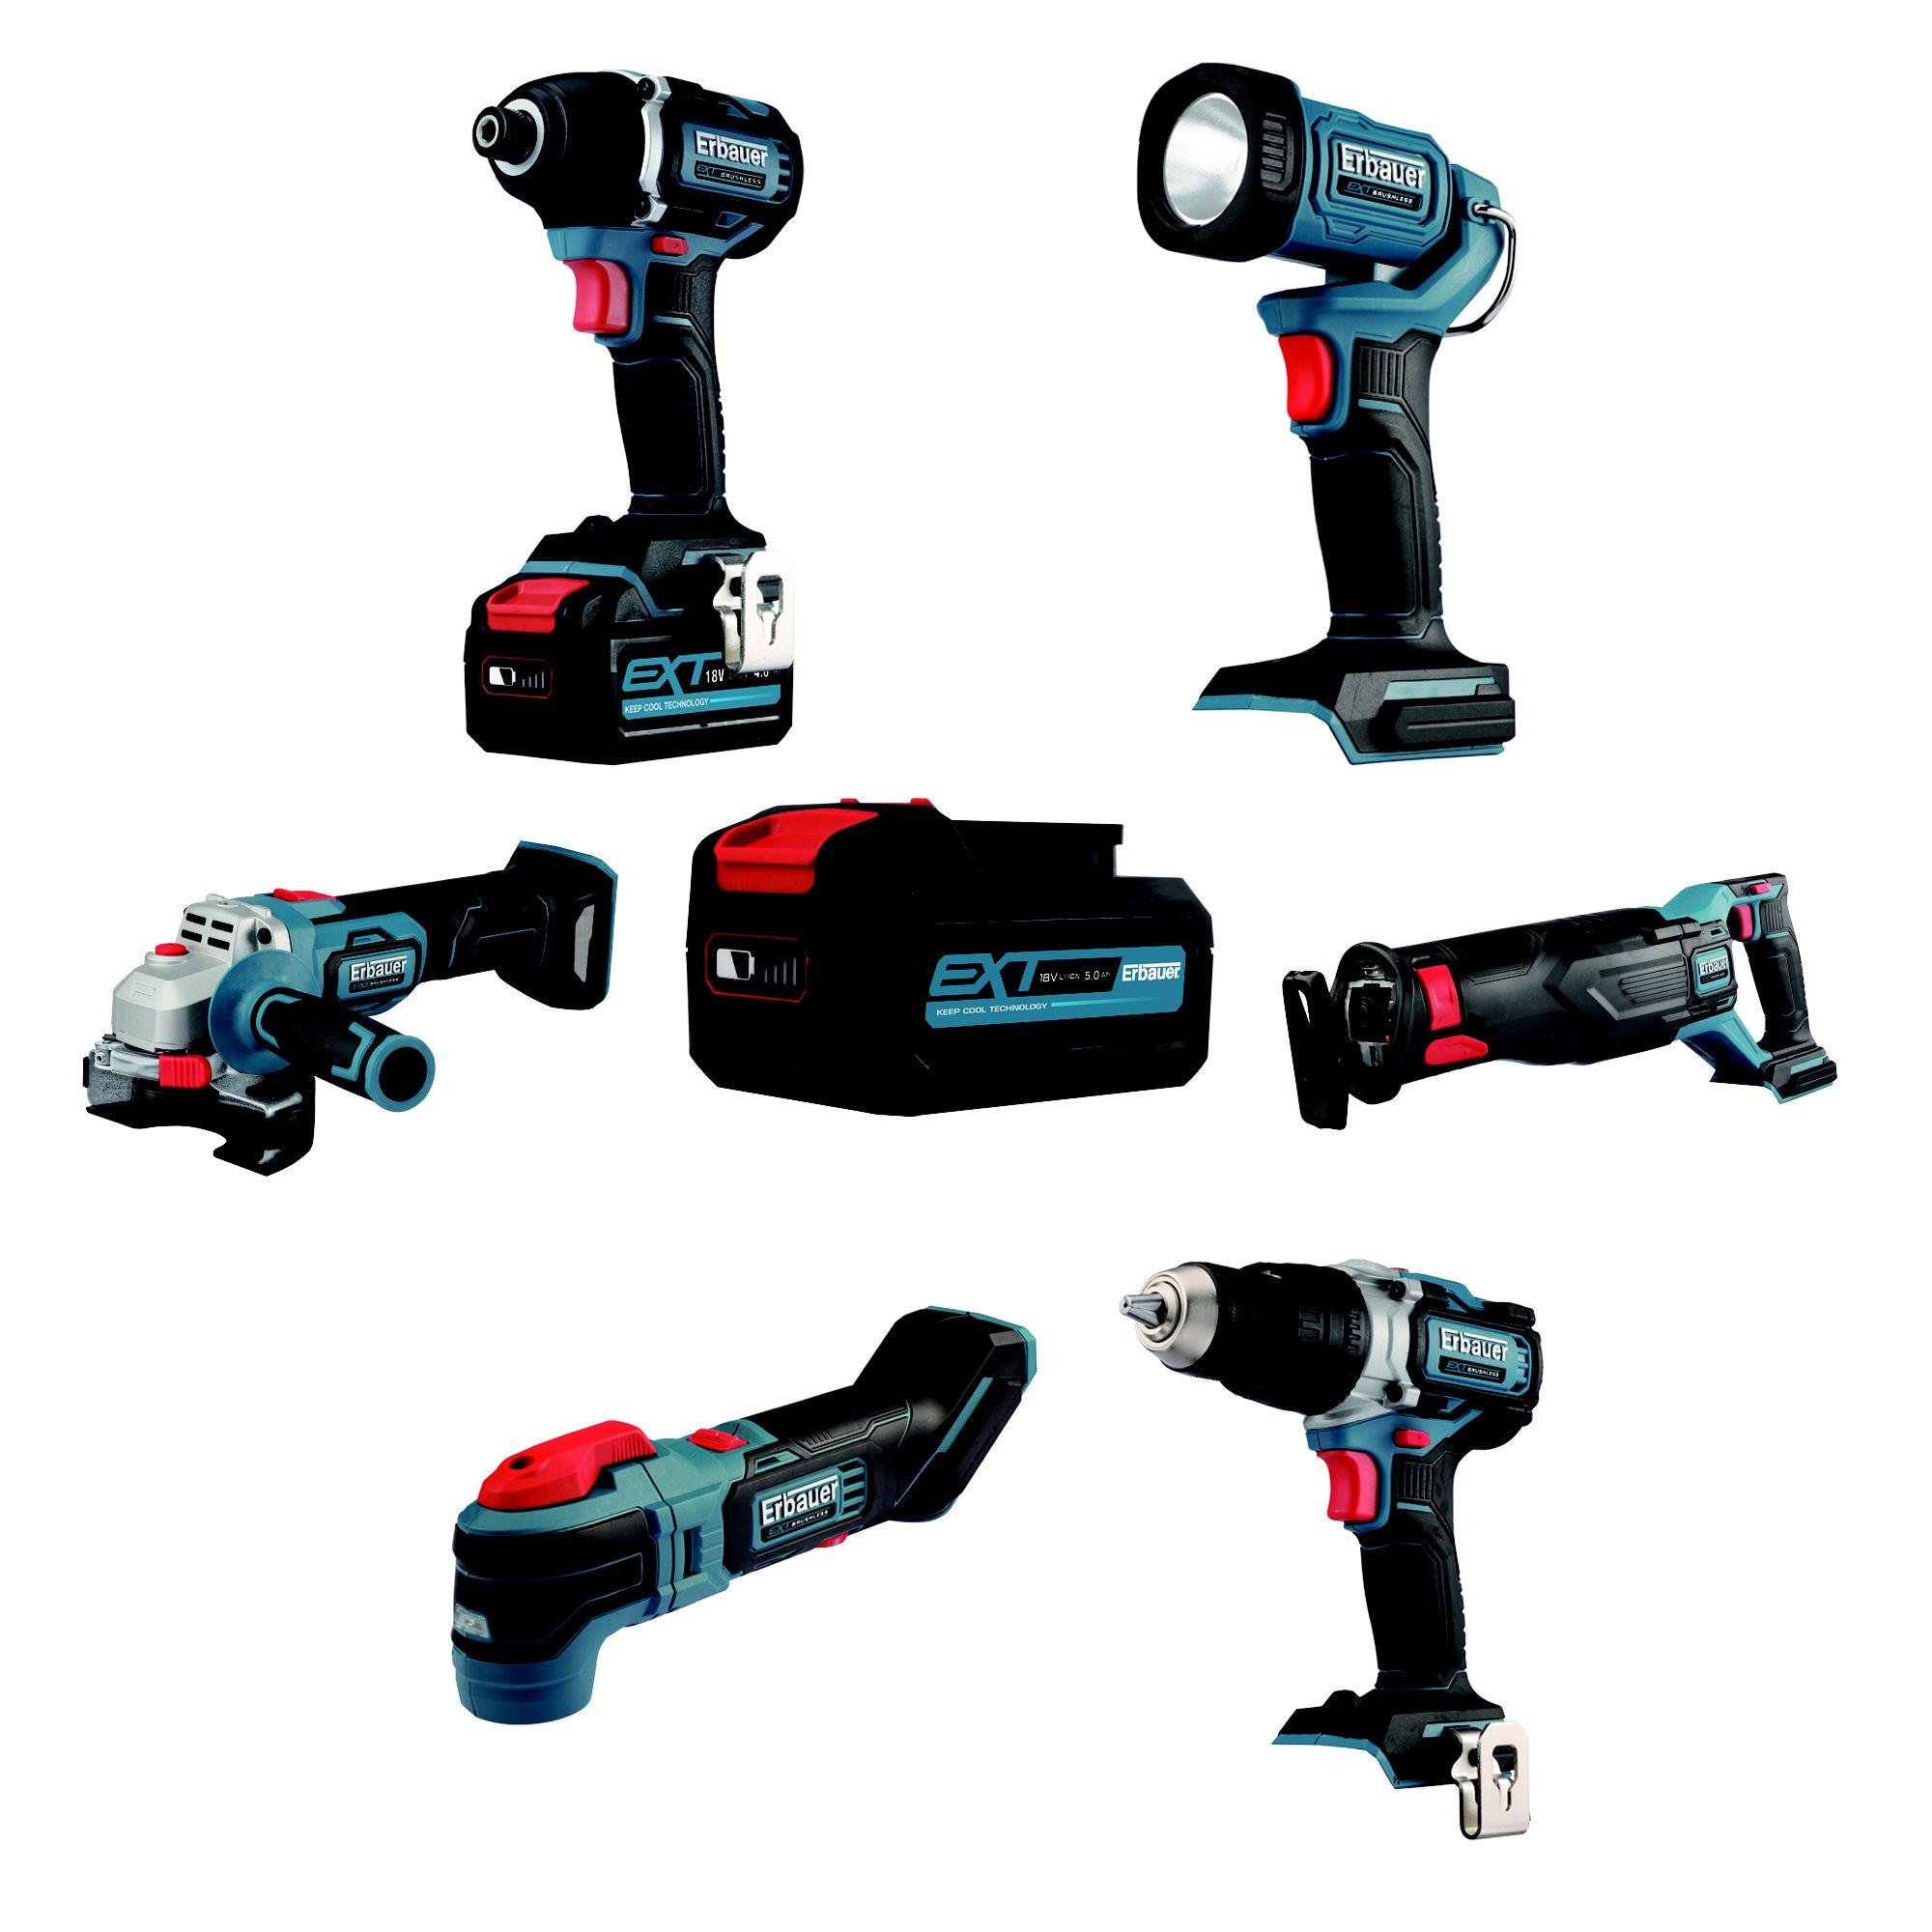 Erbauer 6 Piece Brushless Cordless Tool Kit | Departments | DIY at B&Q